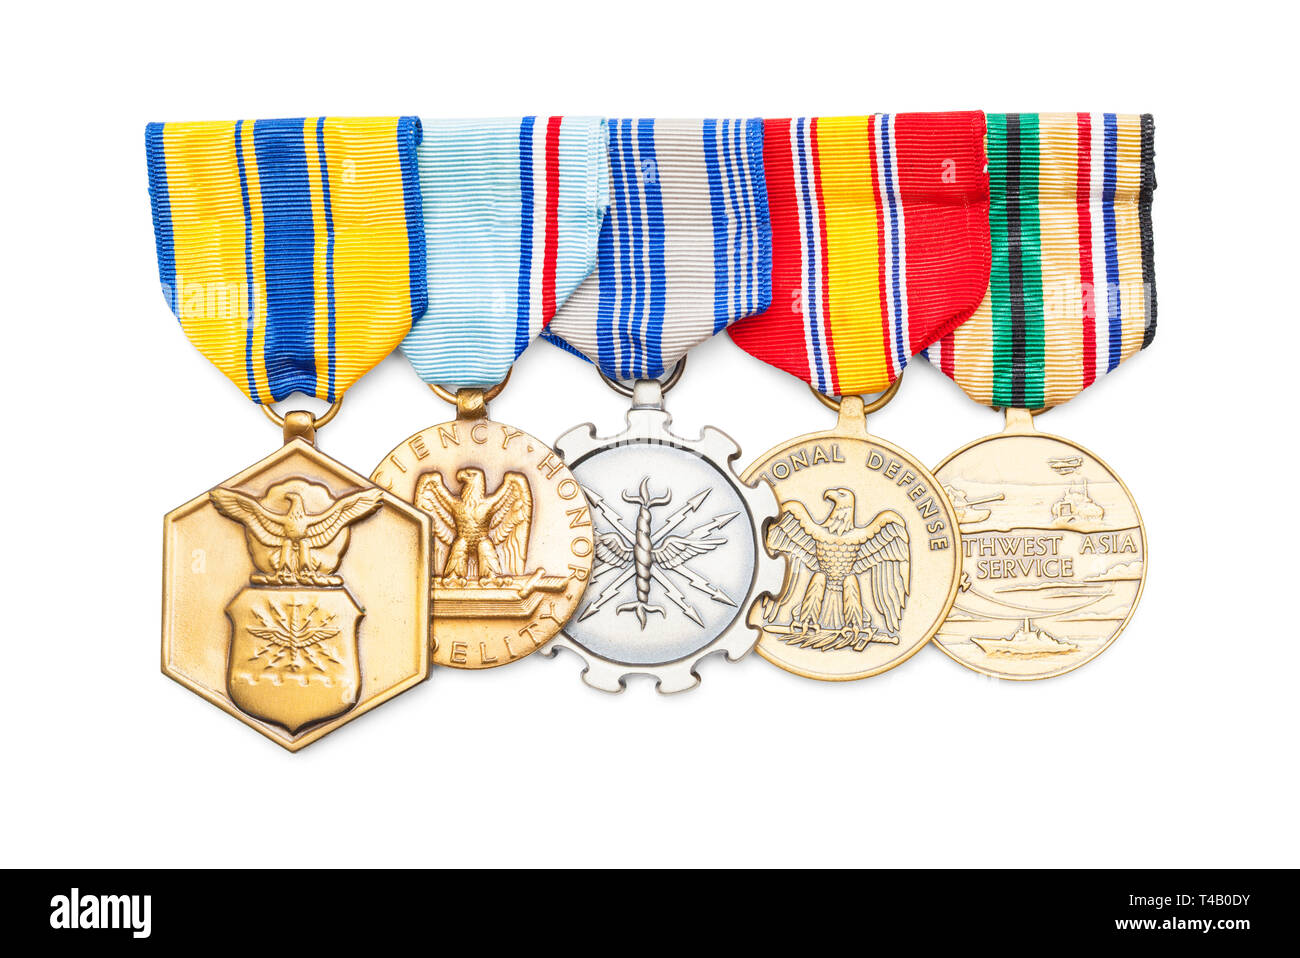 United States Military Medals Isolated on White. - Stock Image